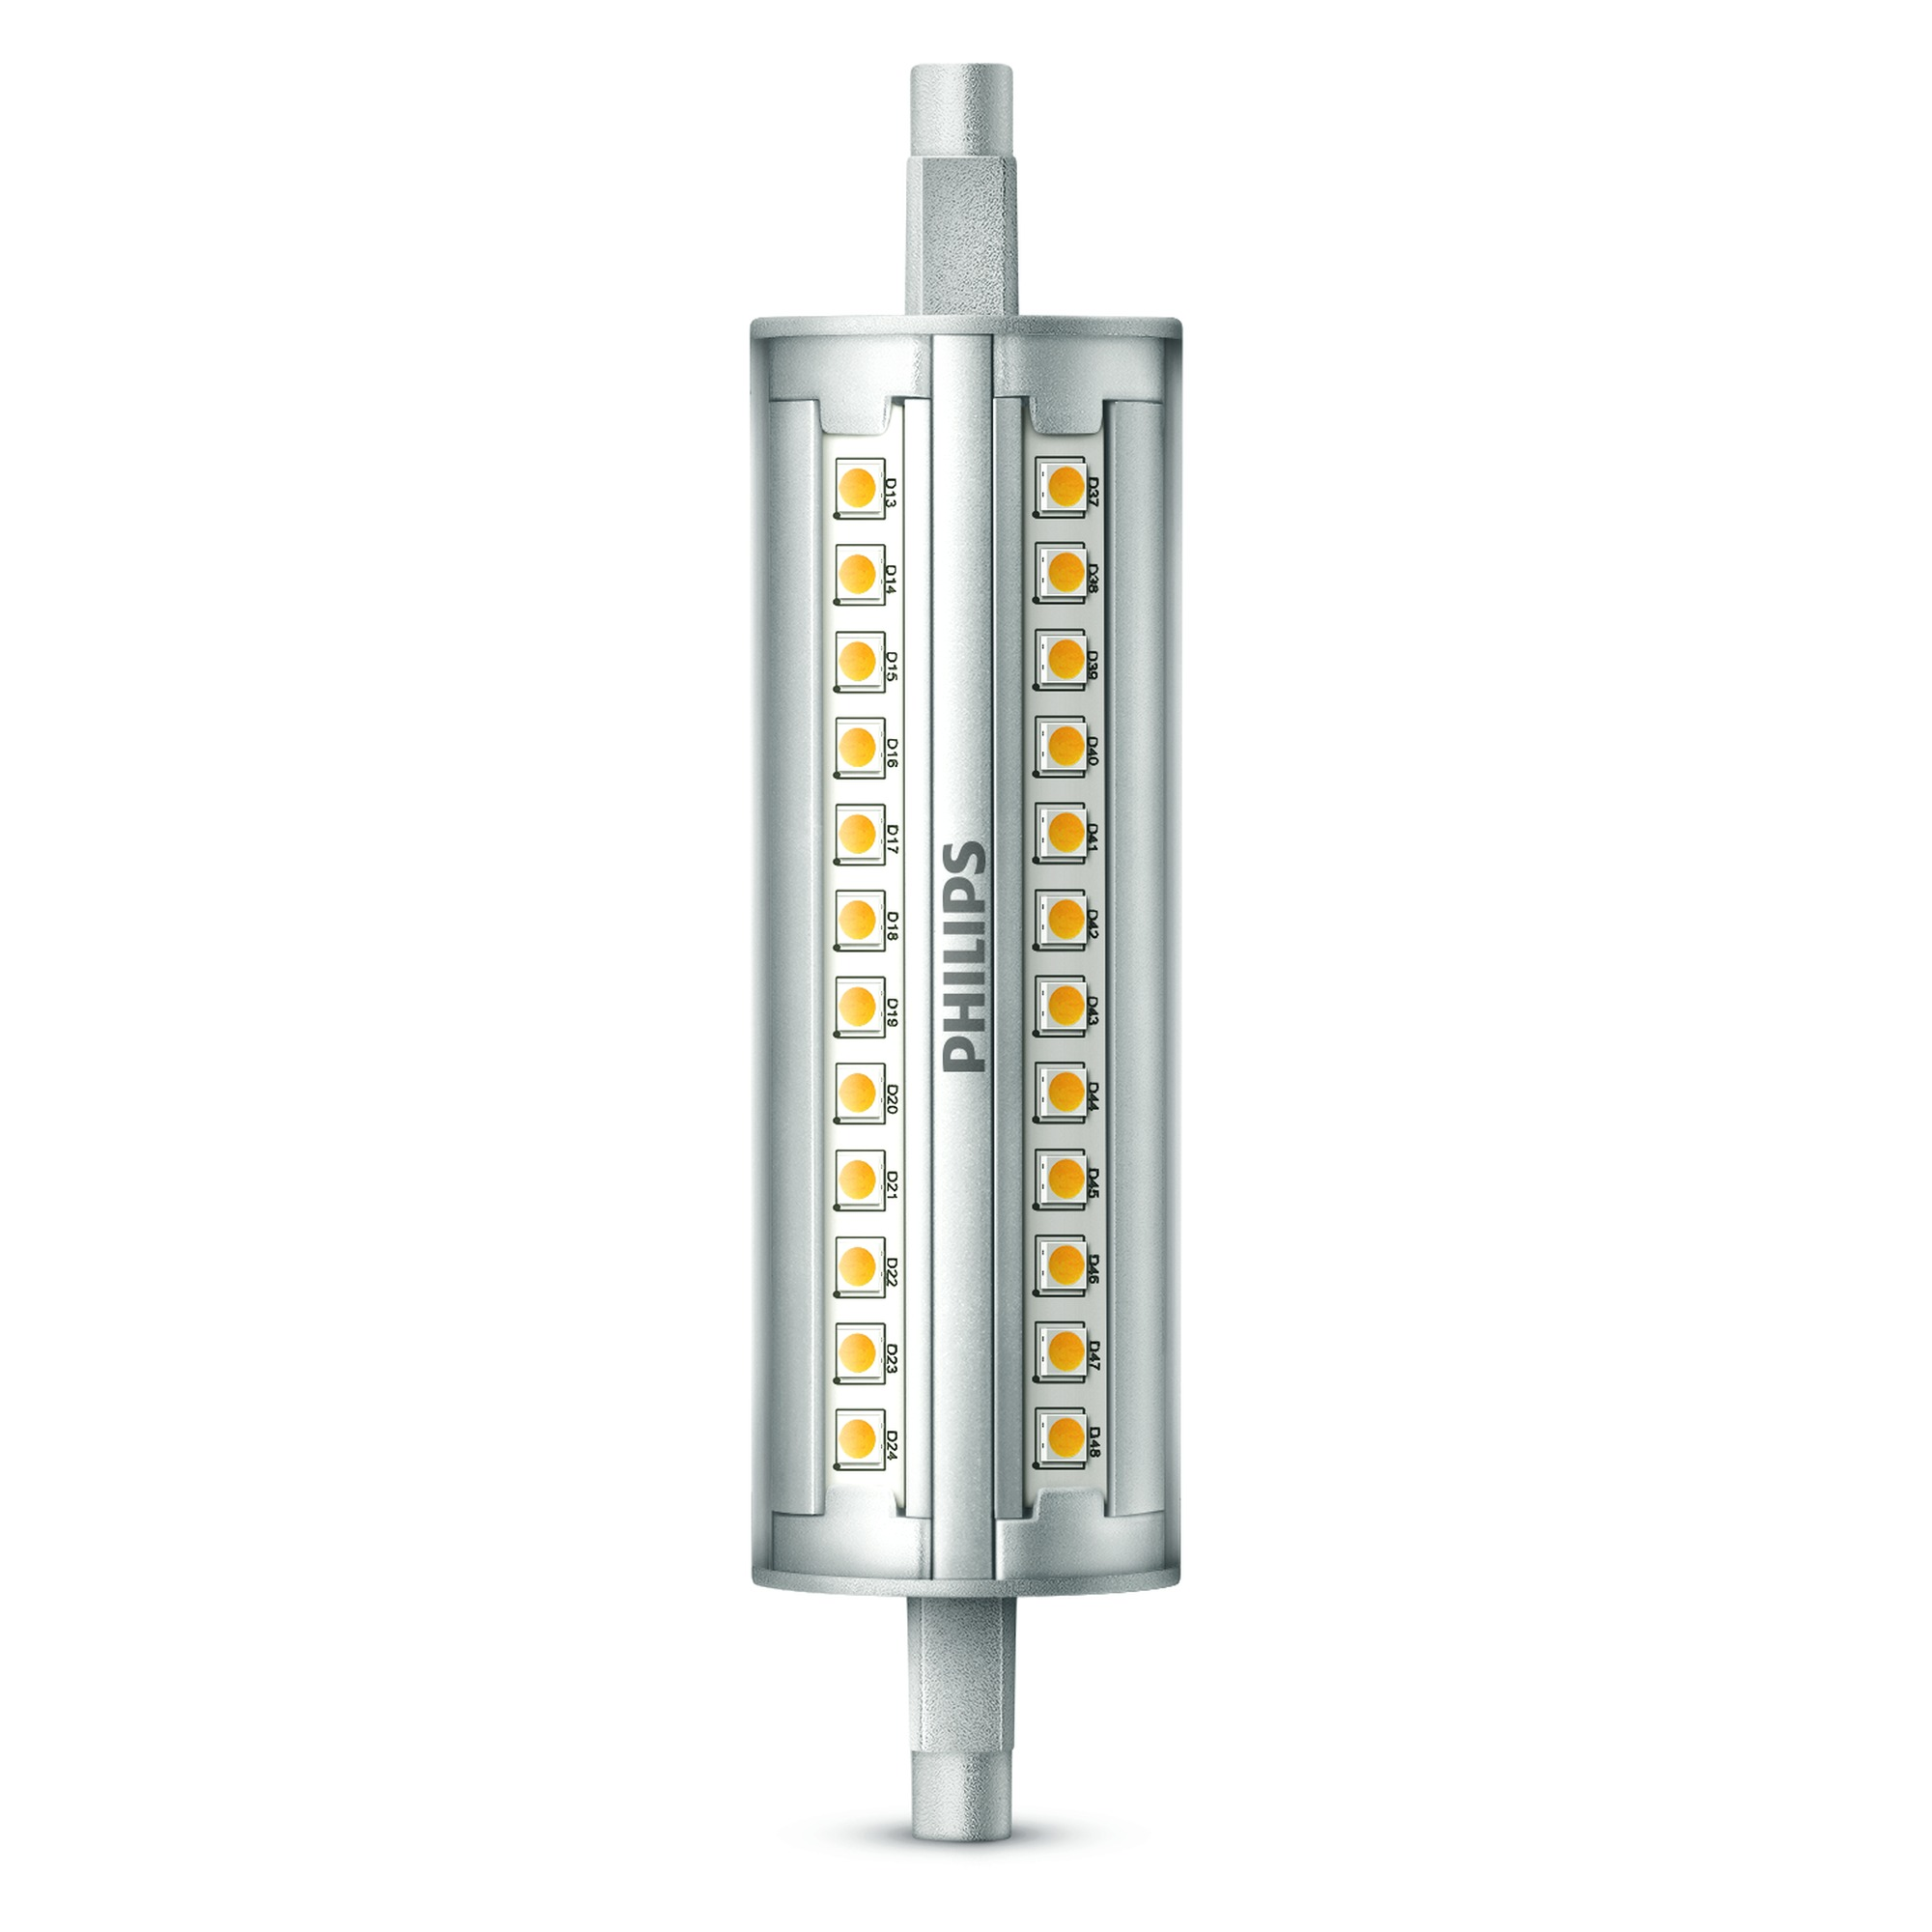 Ampoule Led 18w Ampoule Crayon Led Philips R7s 18w100w 1000 Lm Dimmable